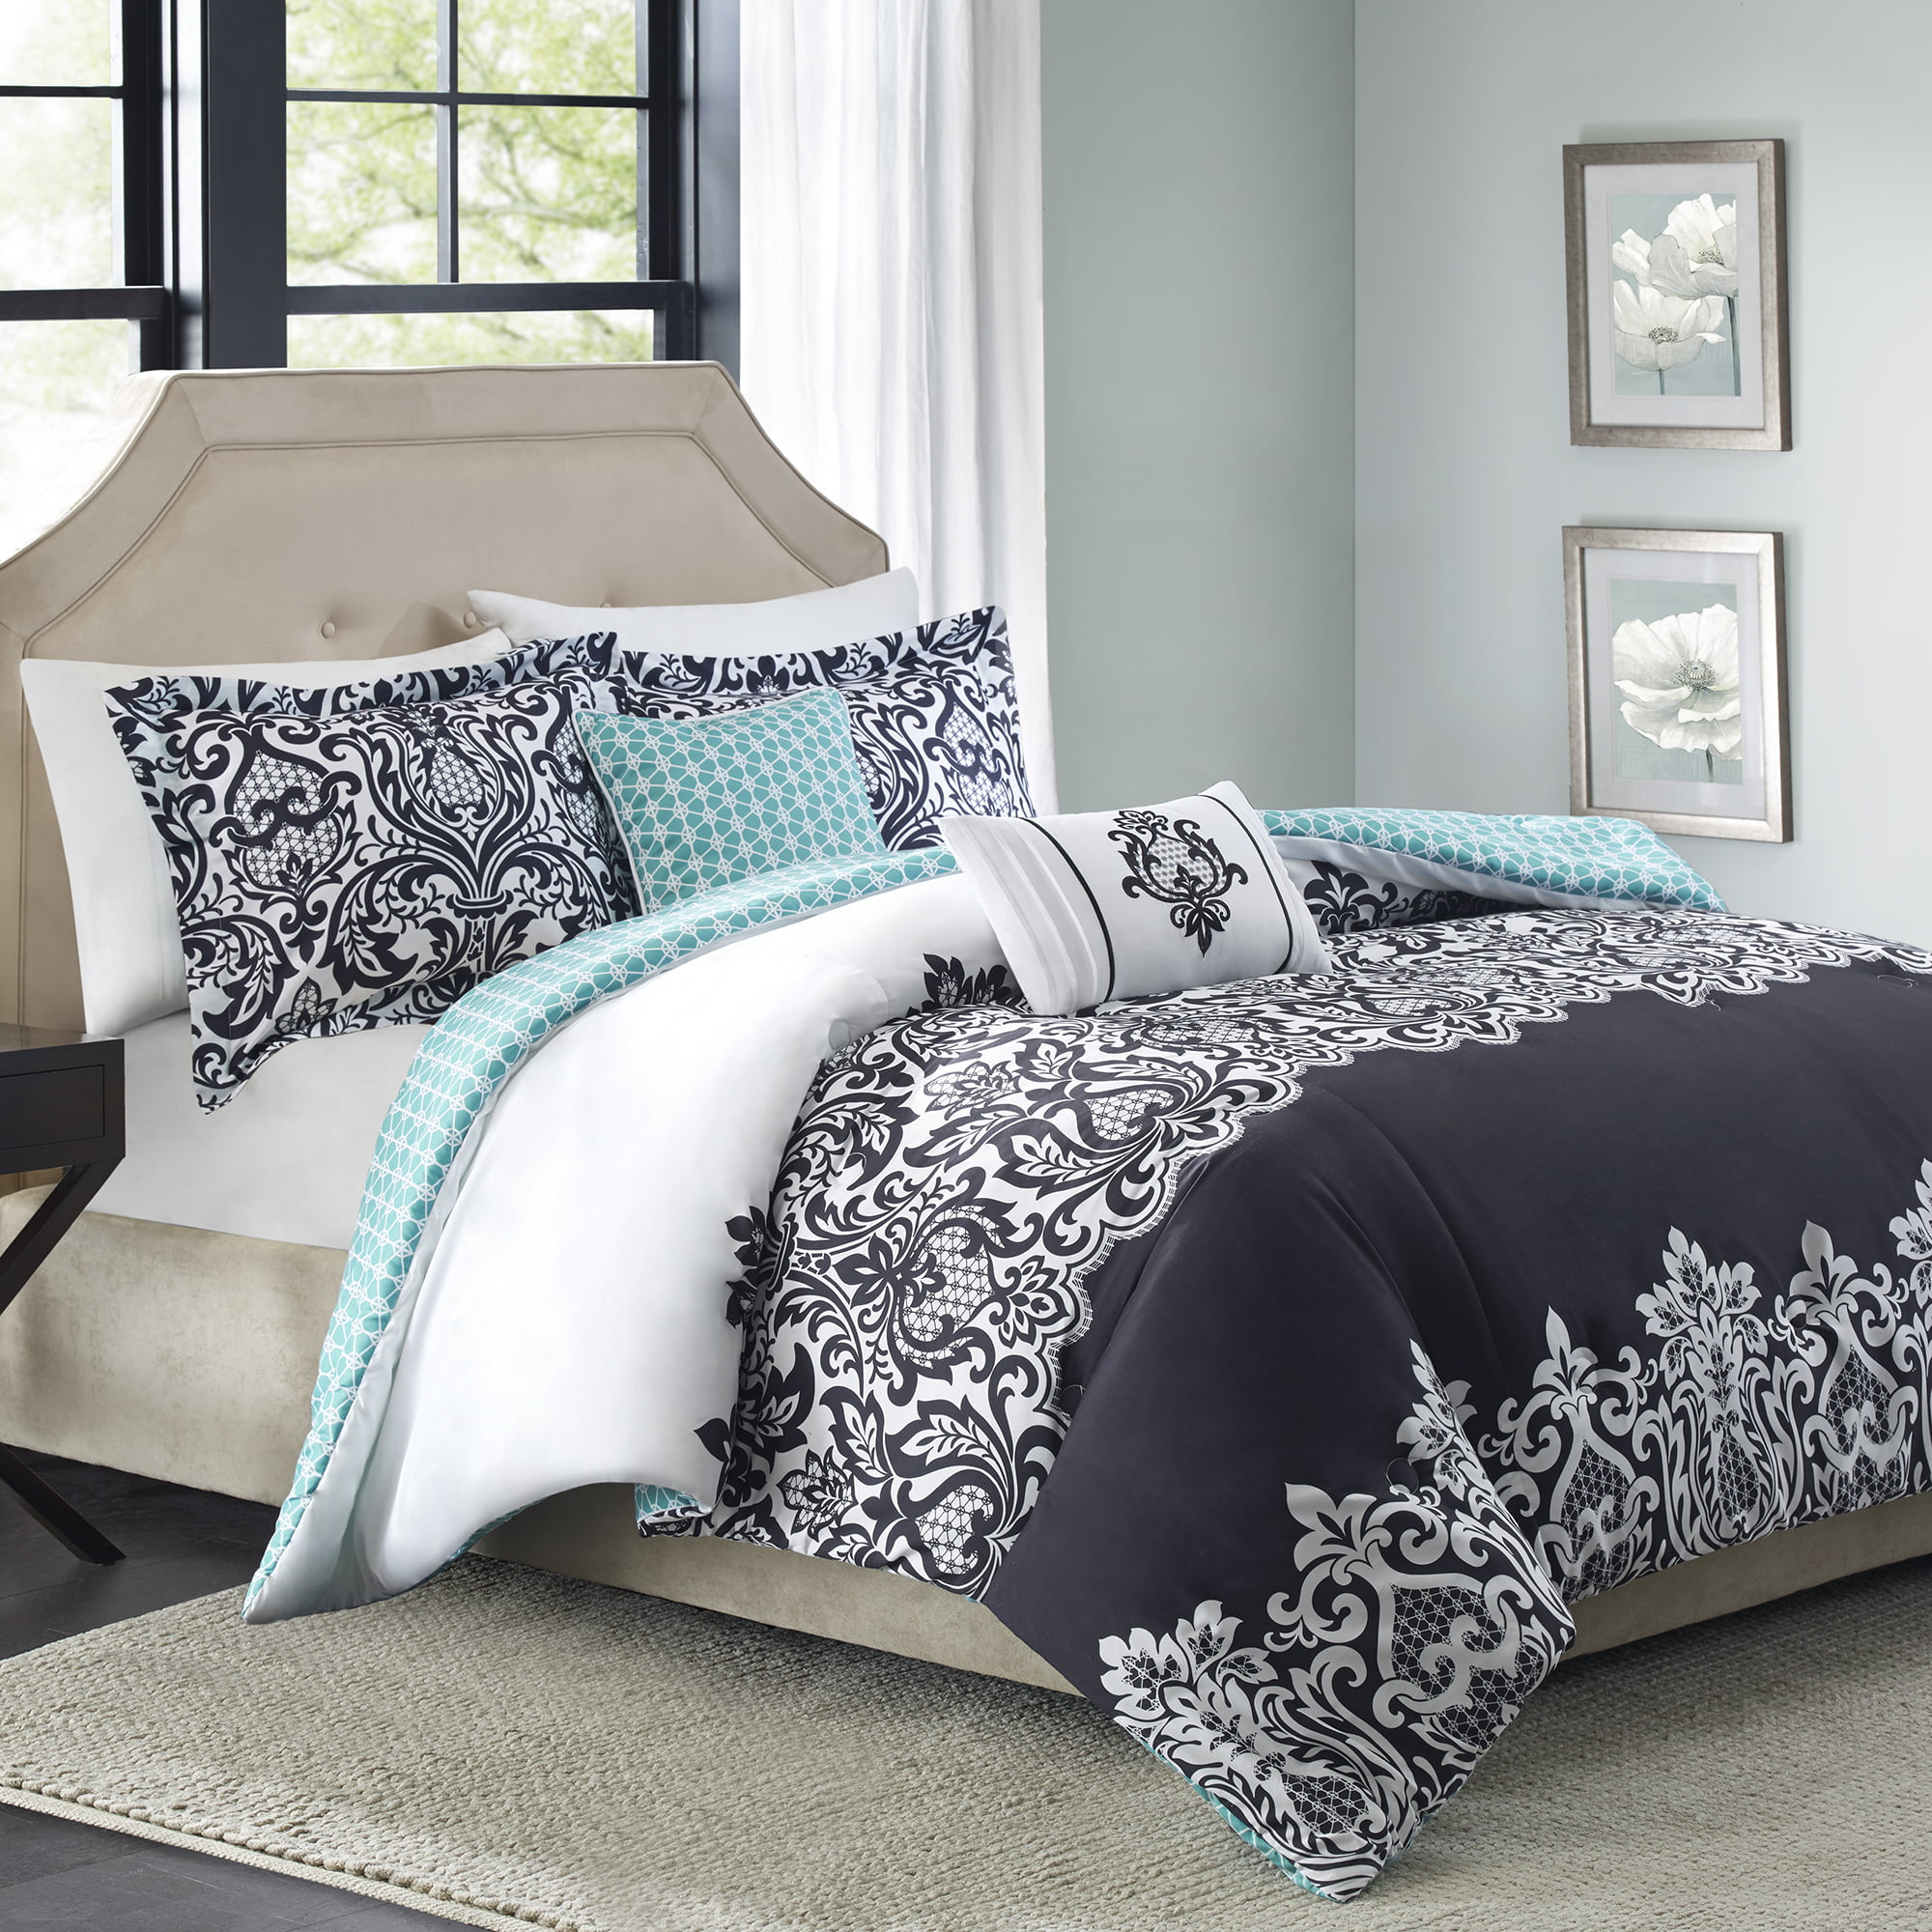 Better Homes and Gardens Damask 5-Piece Bedding Comforter Set, Black by JIANGSU KAIRUI HOME TEXTILE CO., LTD